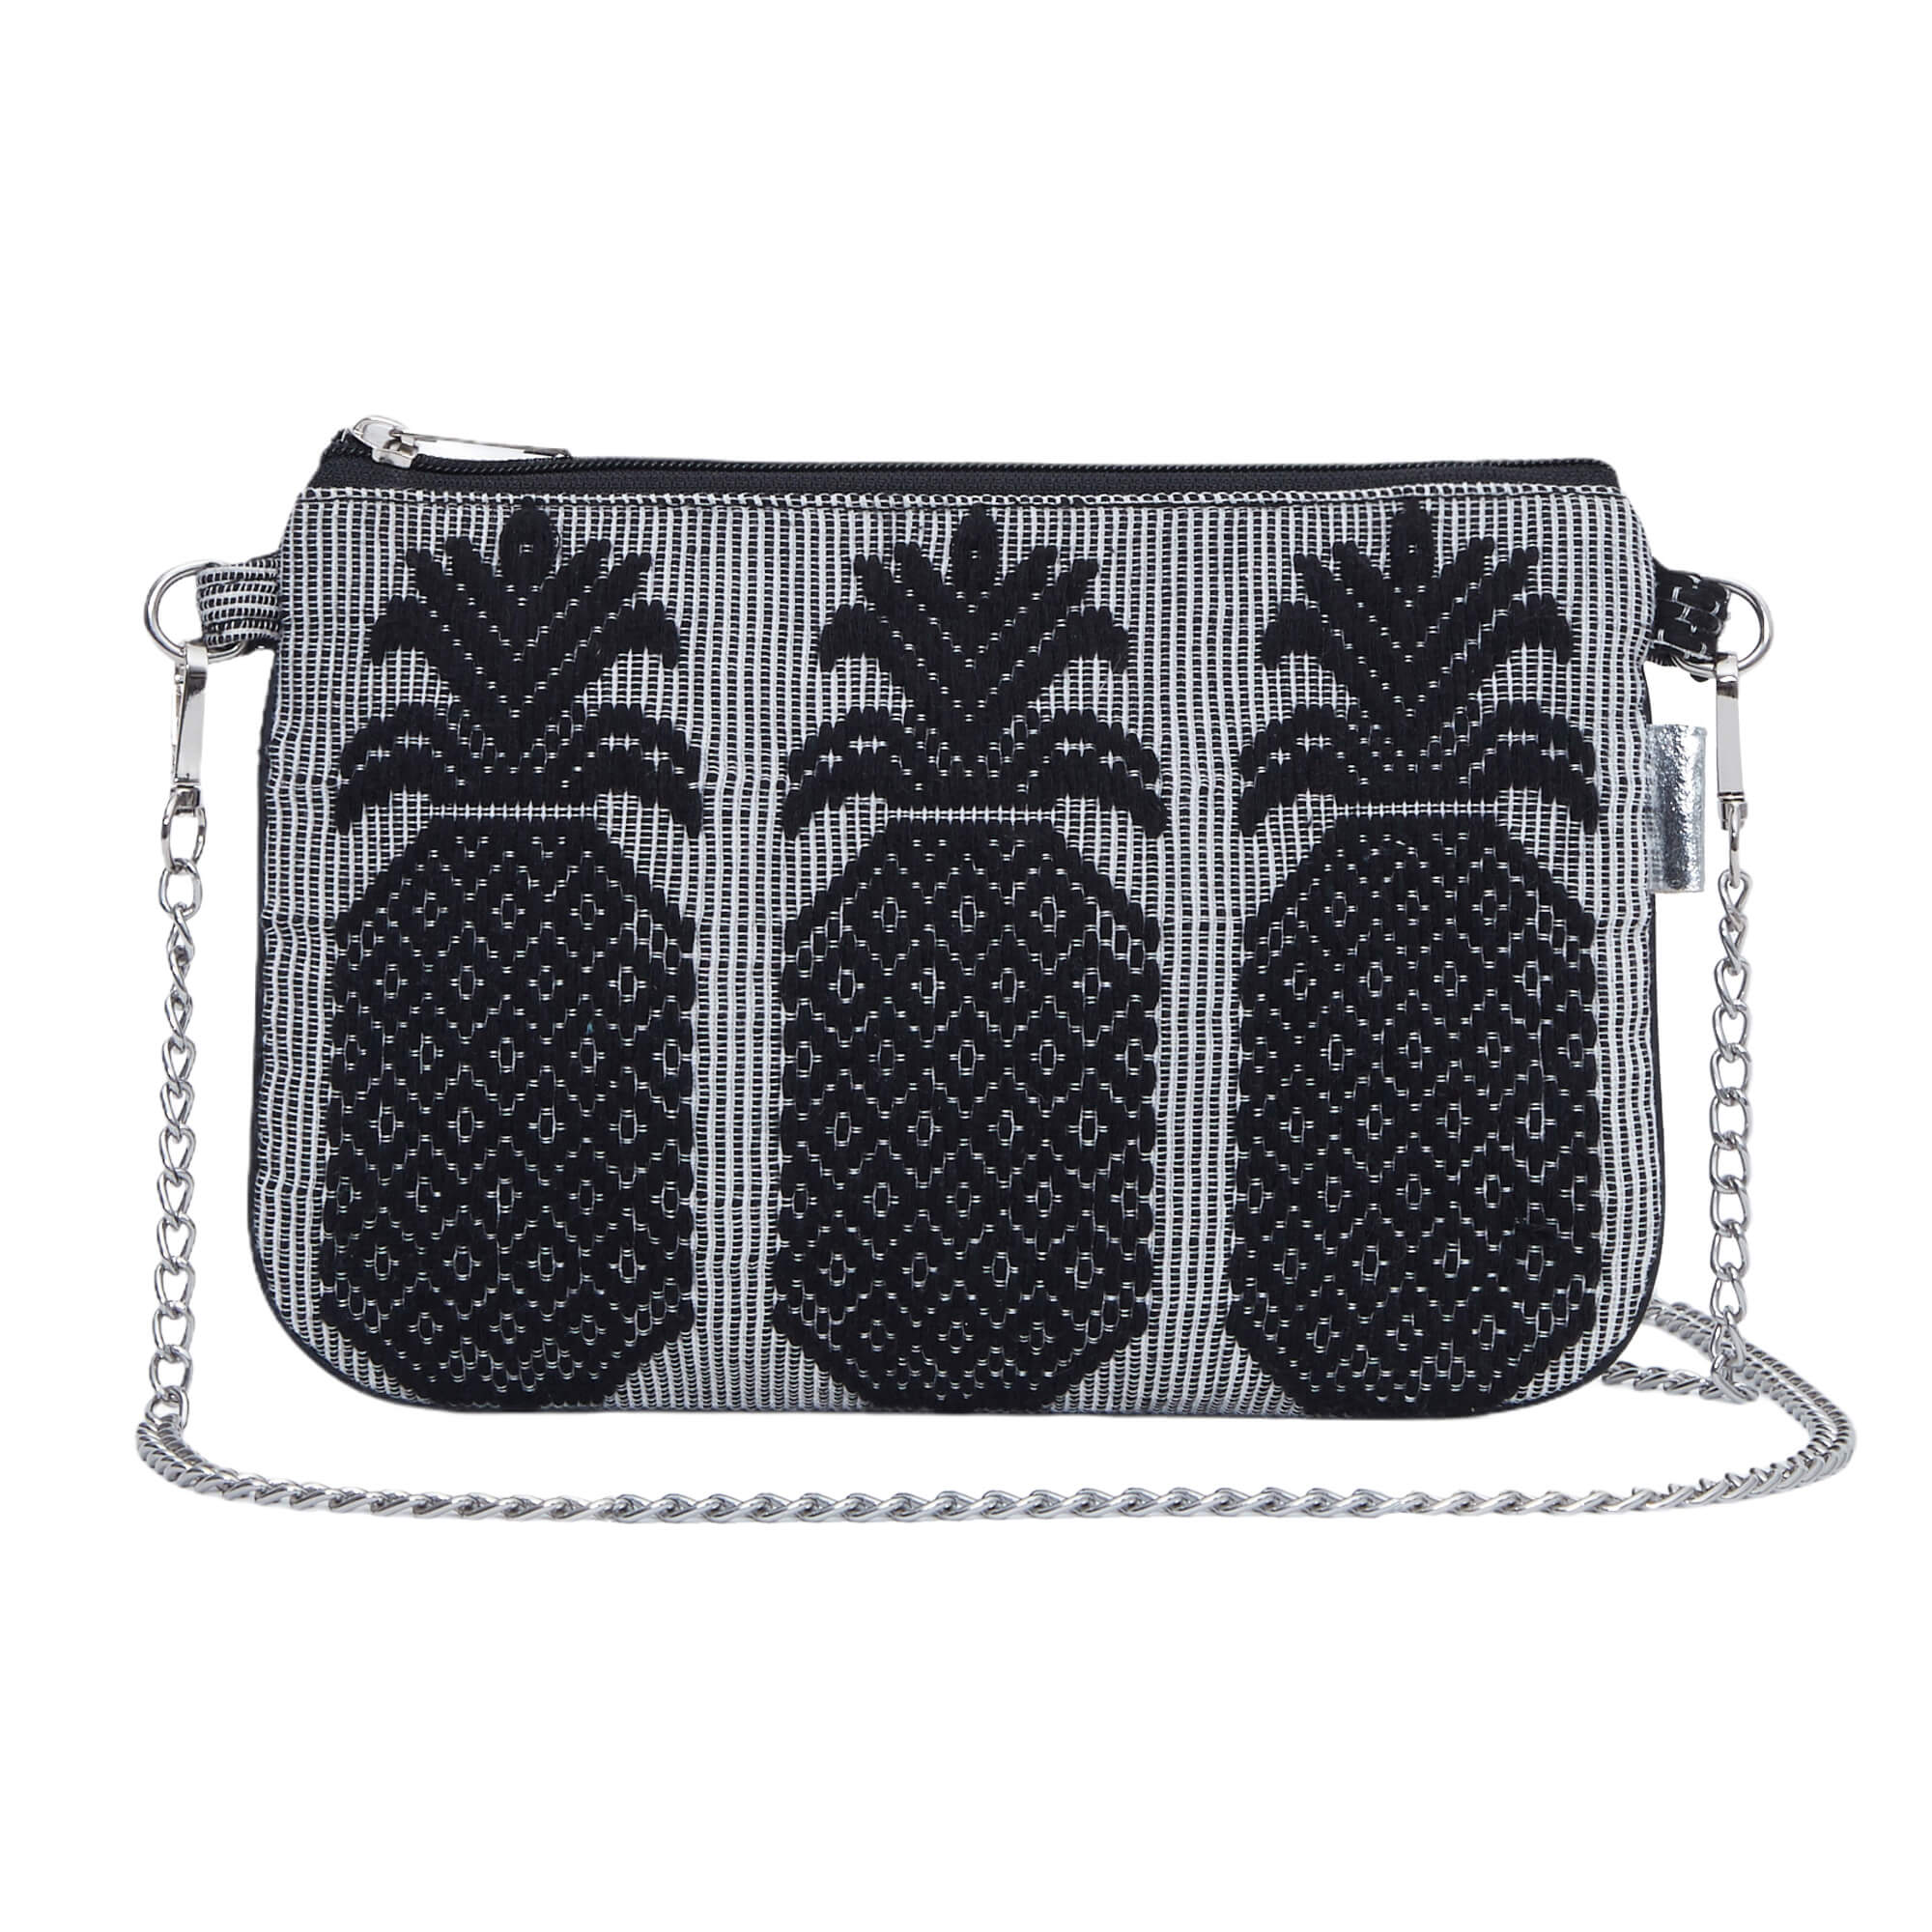 Black Pineapple Sling Bag